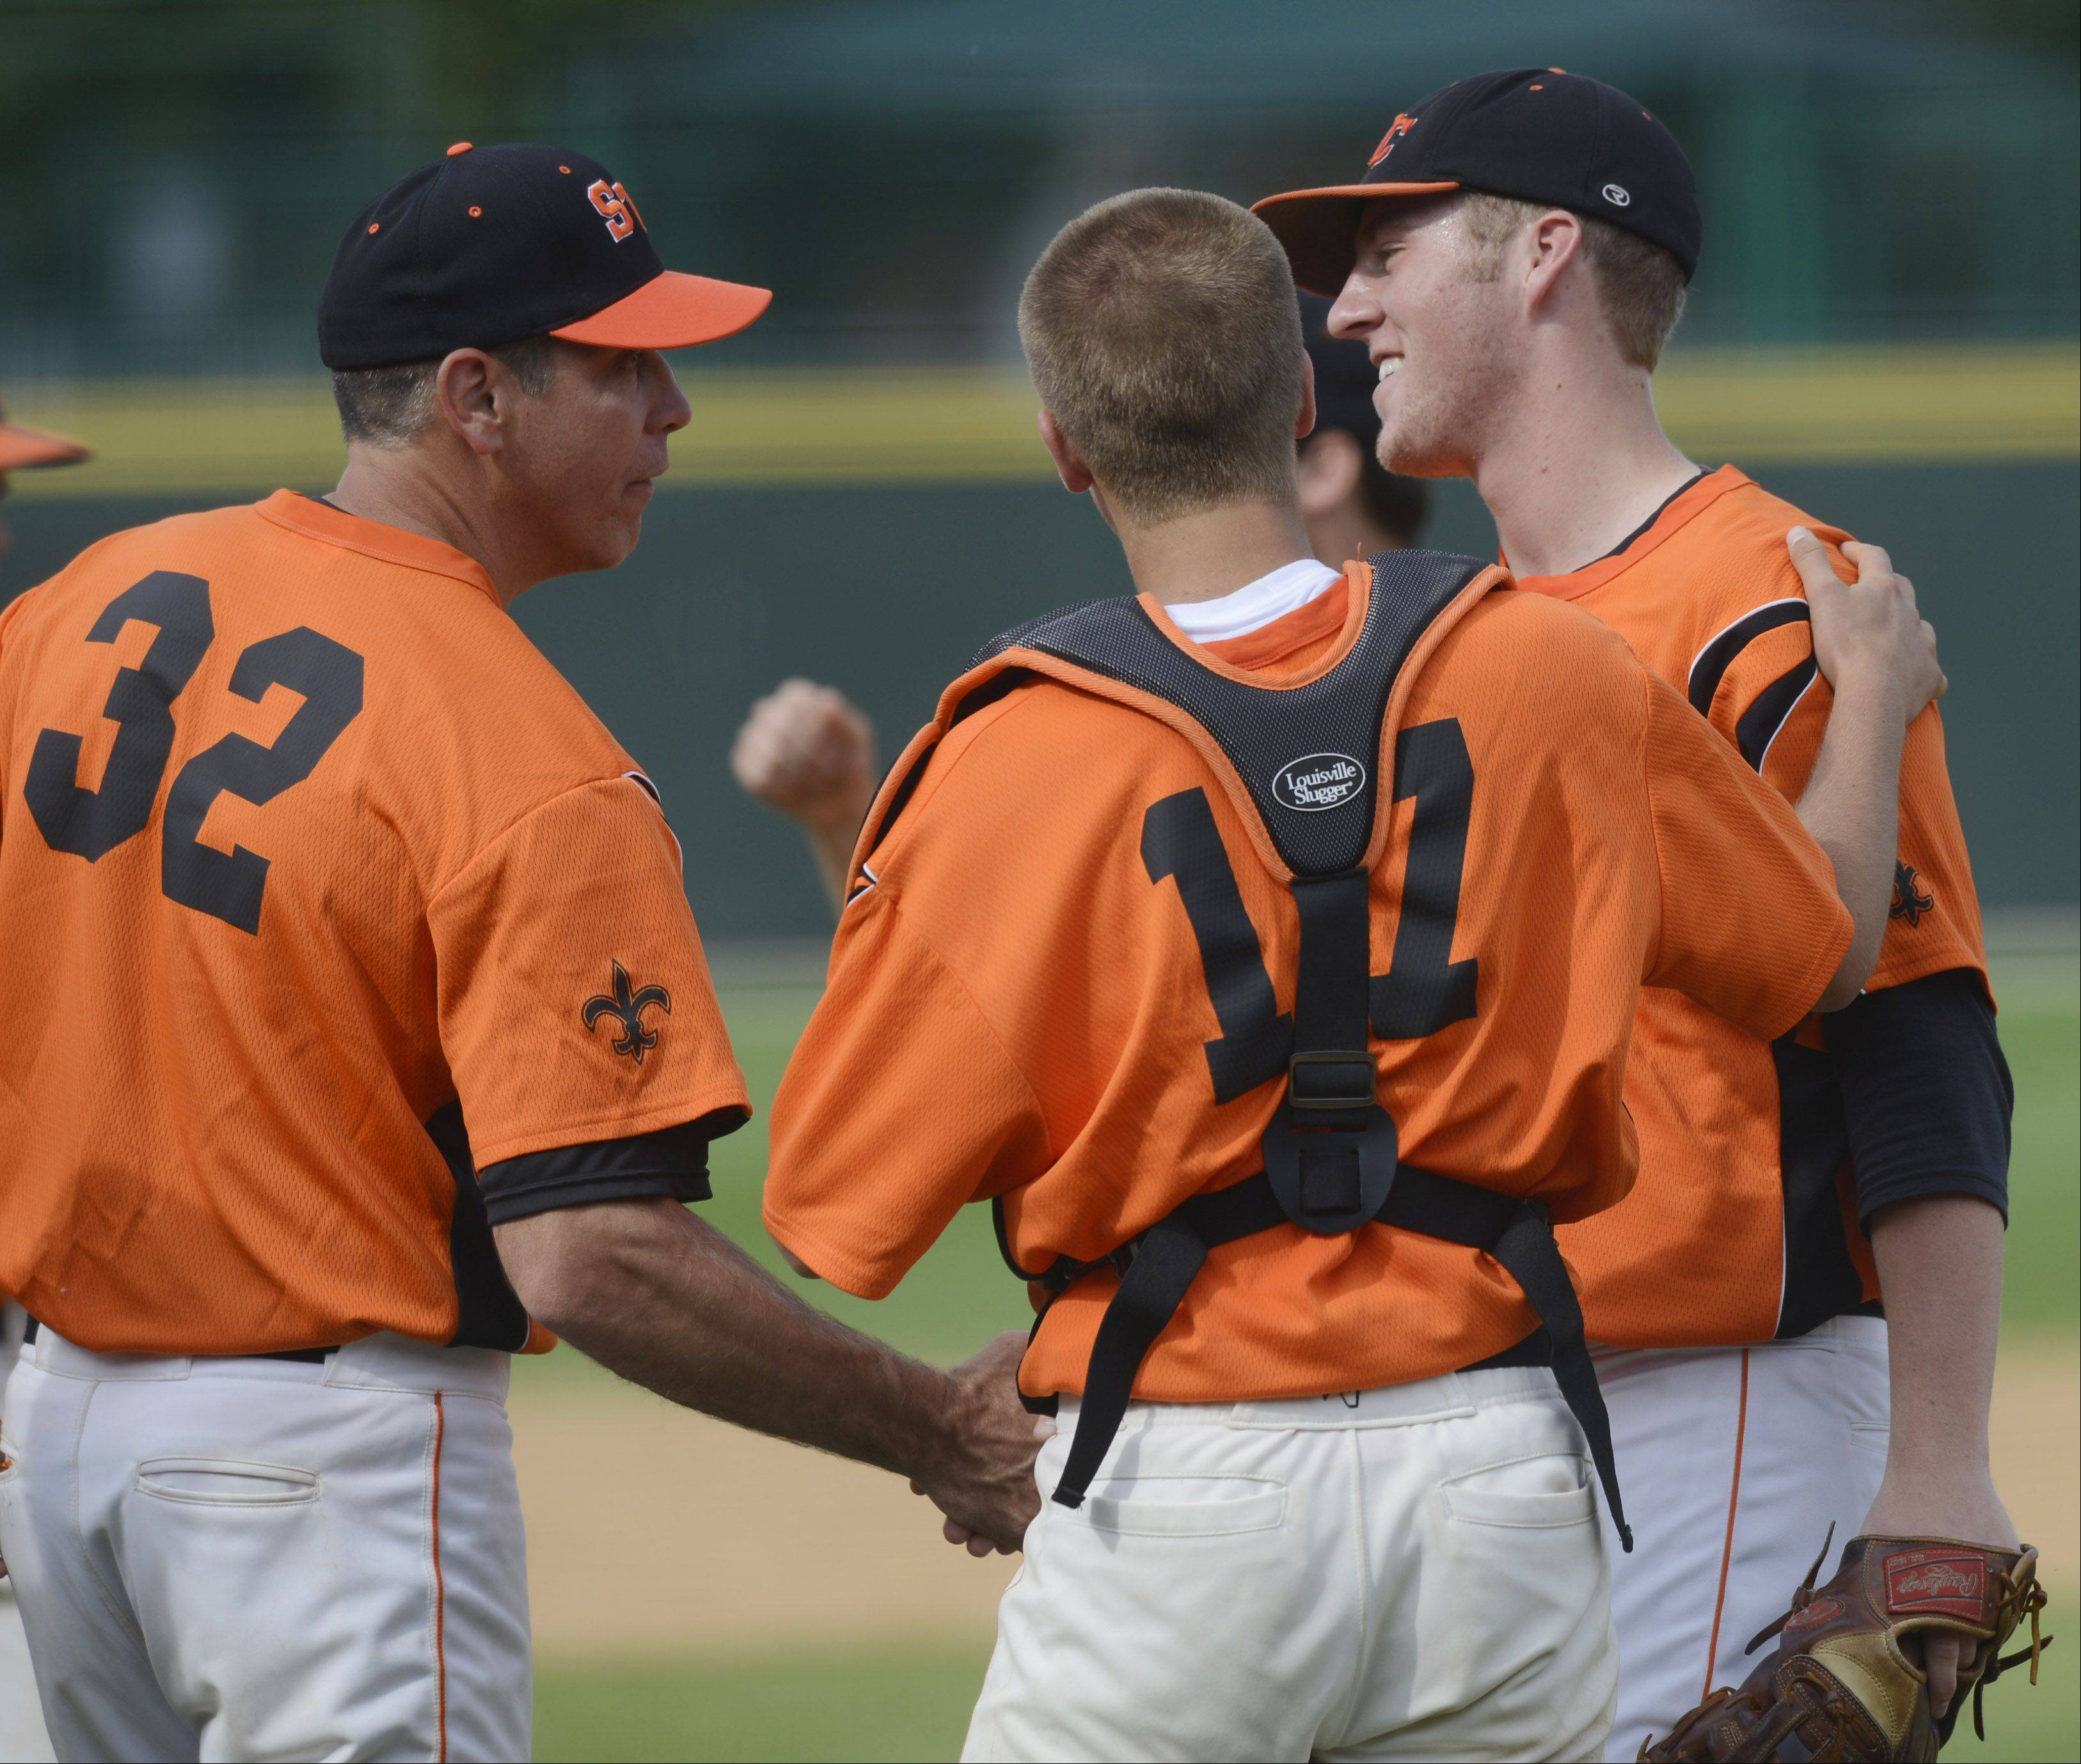 St. Charles East pitcher Troy Dyhkuis, right, is congratulated after following his 2 innings of relief in the Class 4A baseball third-place game at Silver Cross Field in Joliet on Saturday.